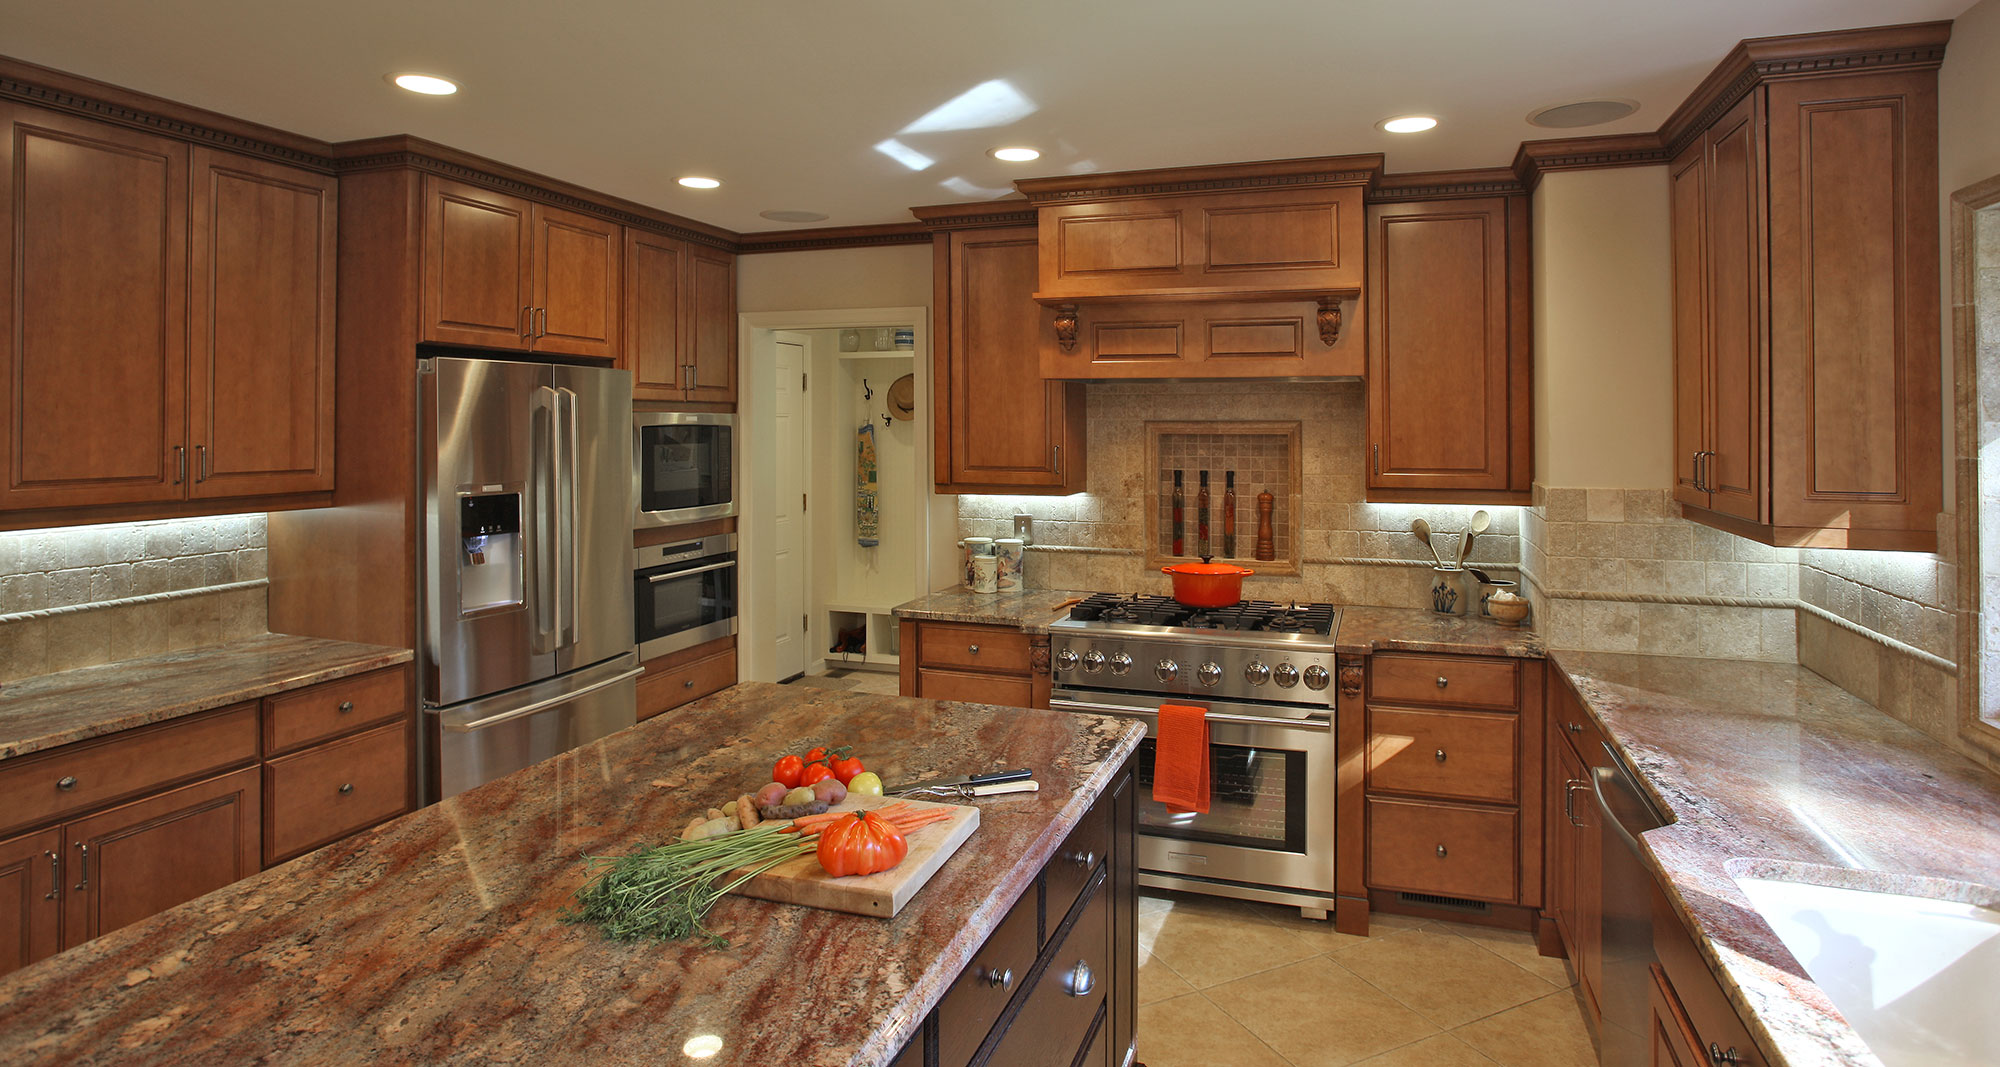 kitchen and bath remodeling serving northern virginia, maryland